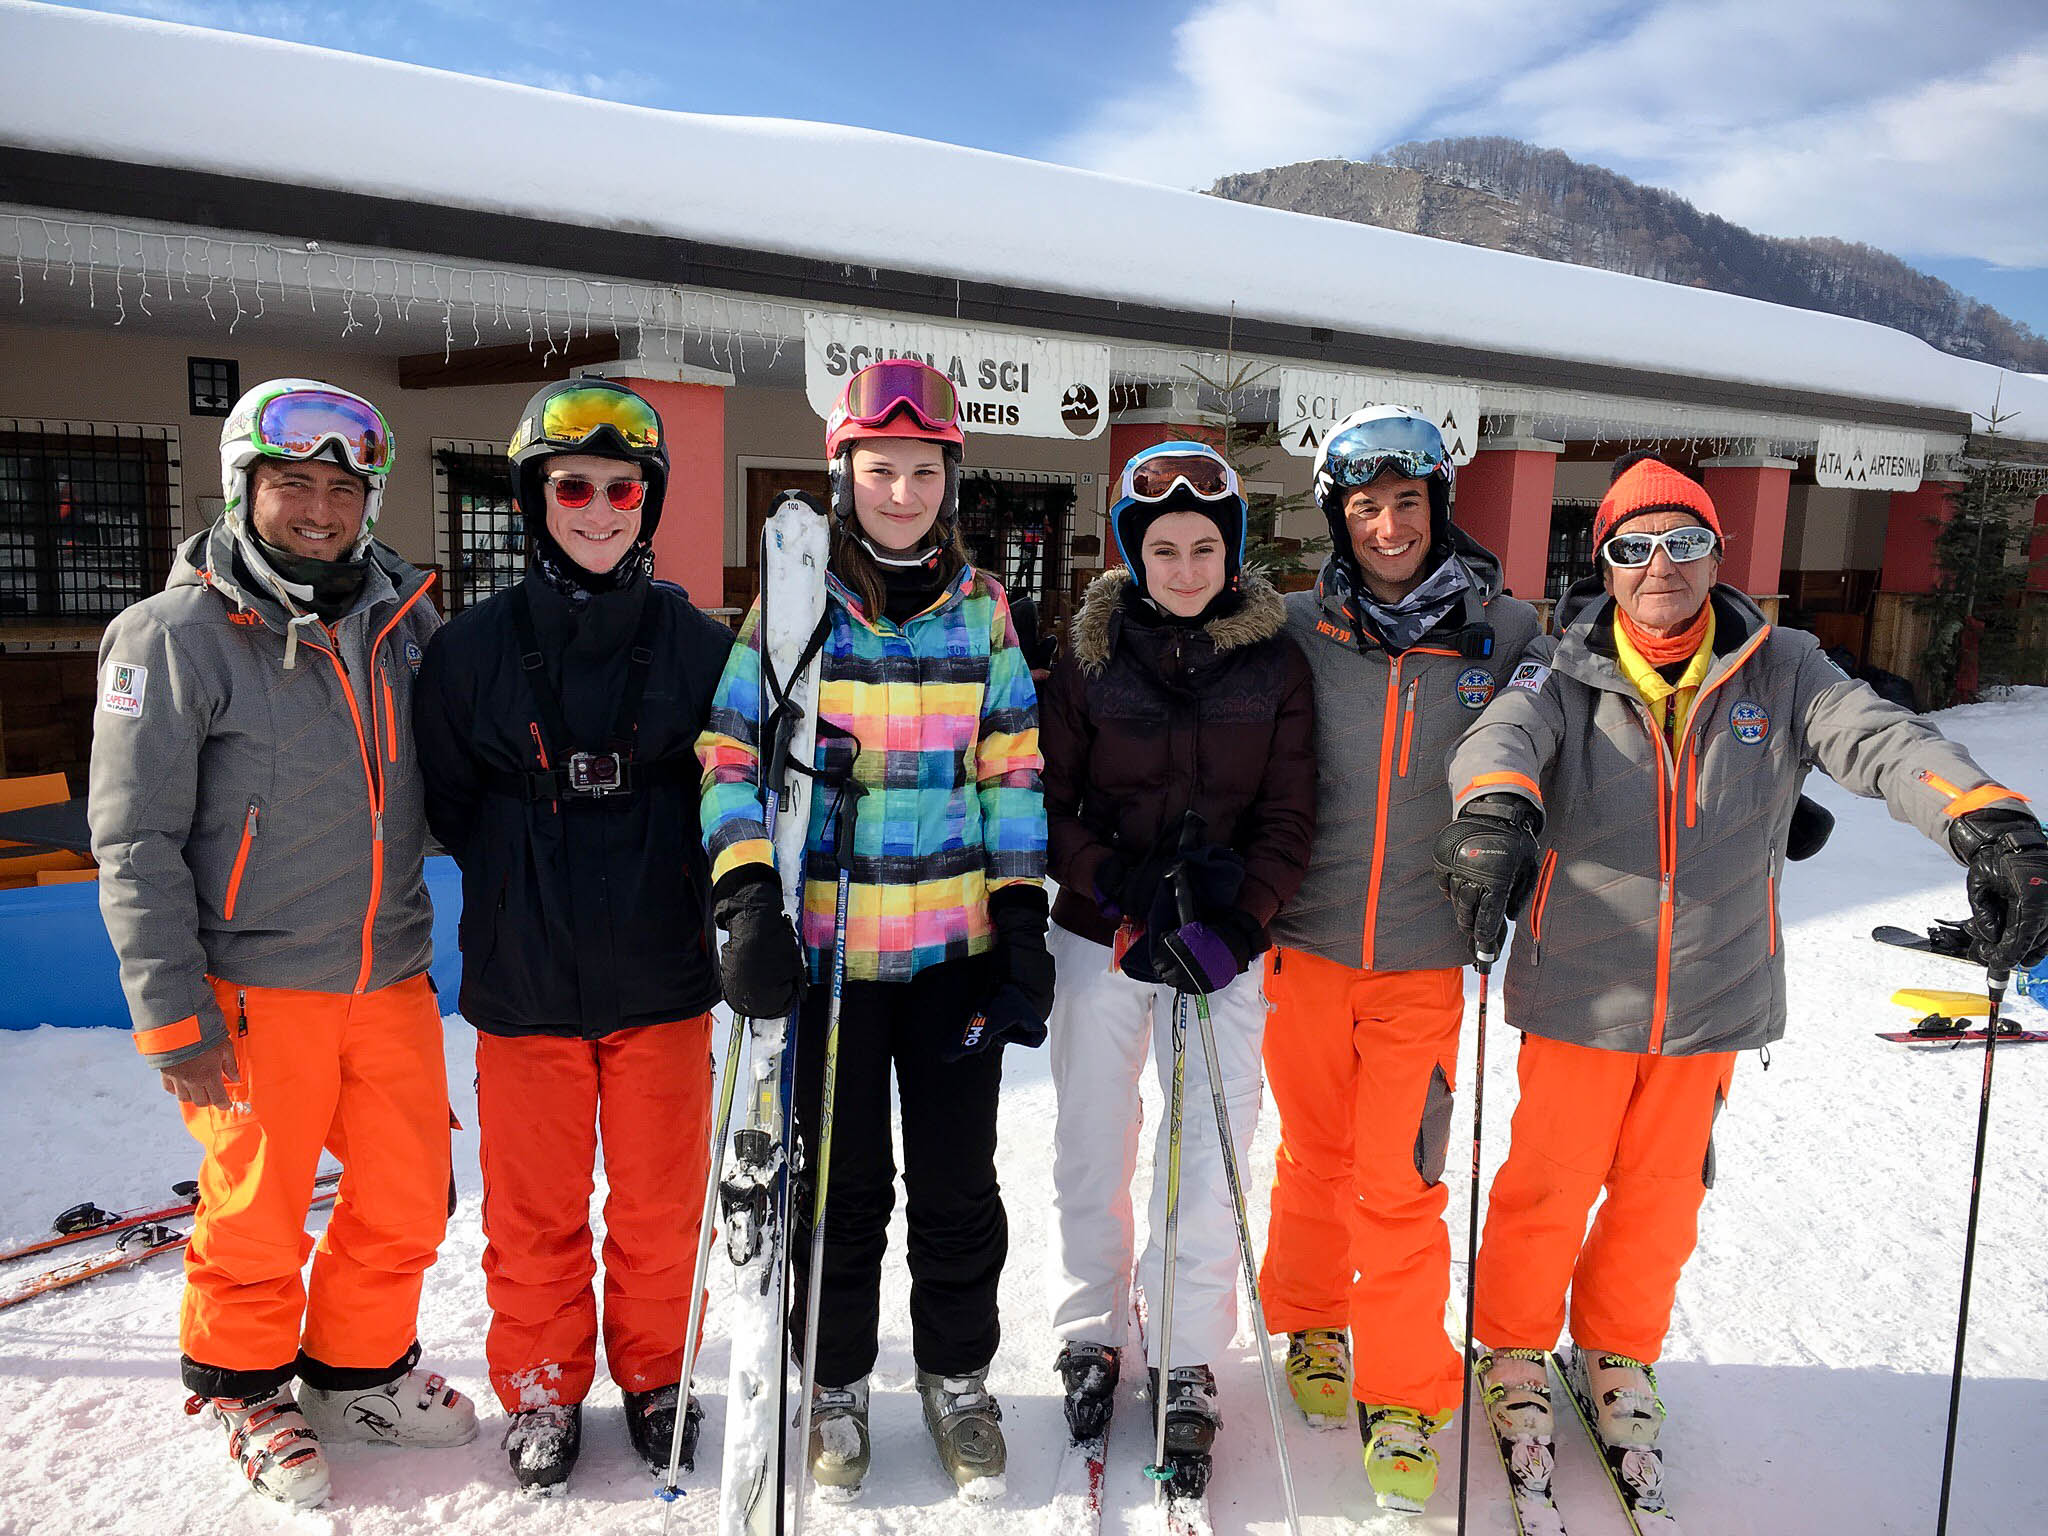 Sixth Form students on their ski trip in Italy